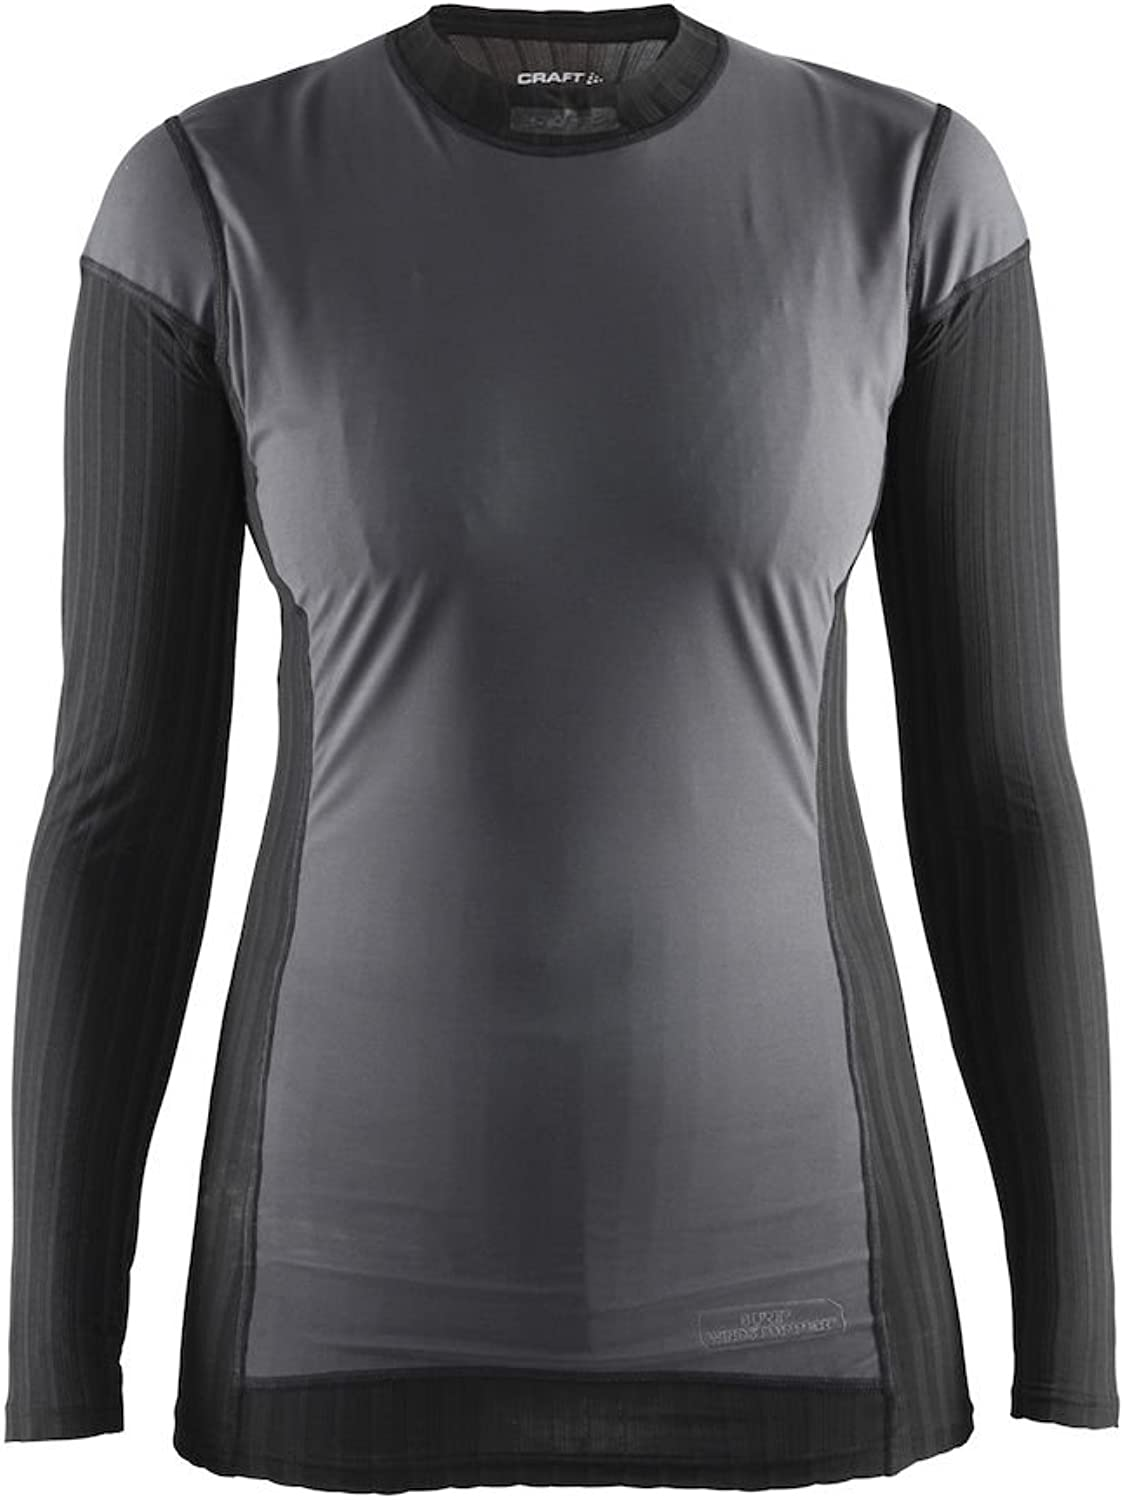 Craft Active Extreme 2.0 CN Women's Baselayer Top